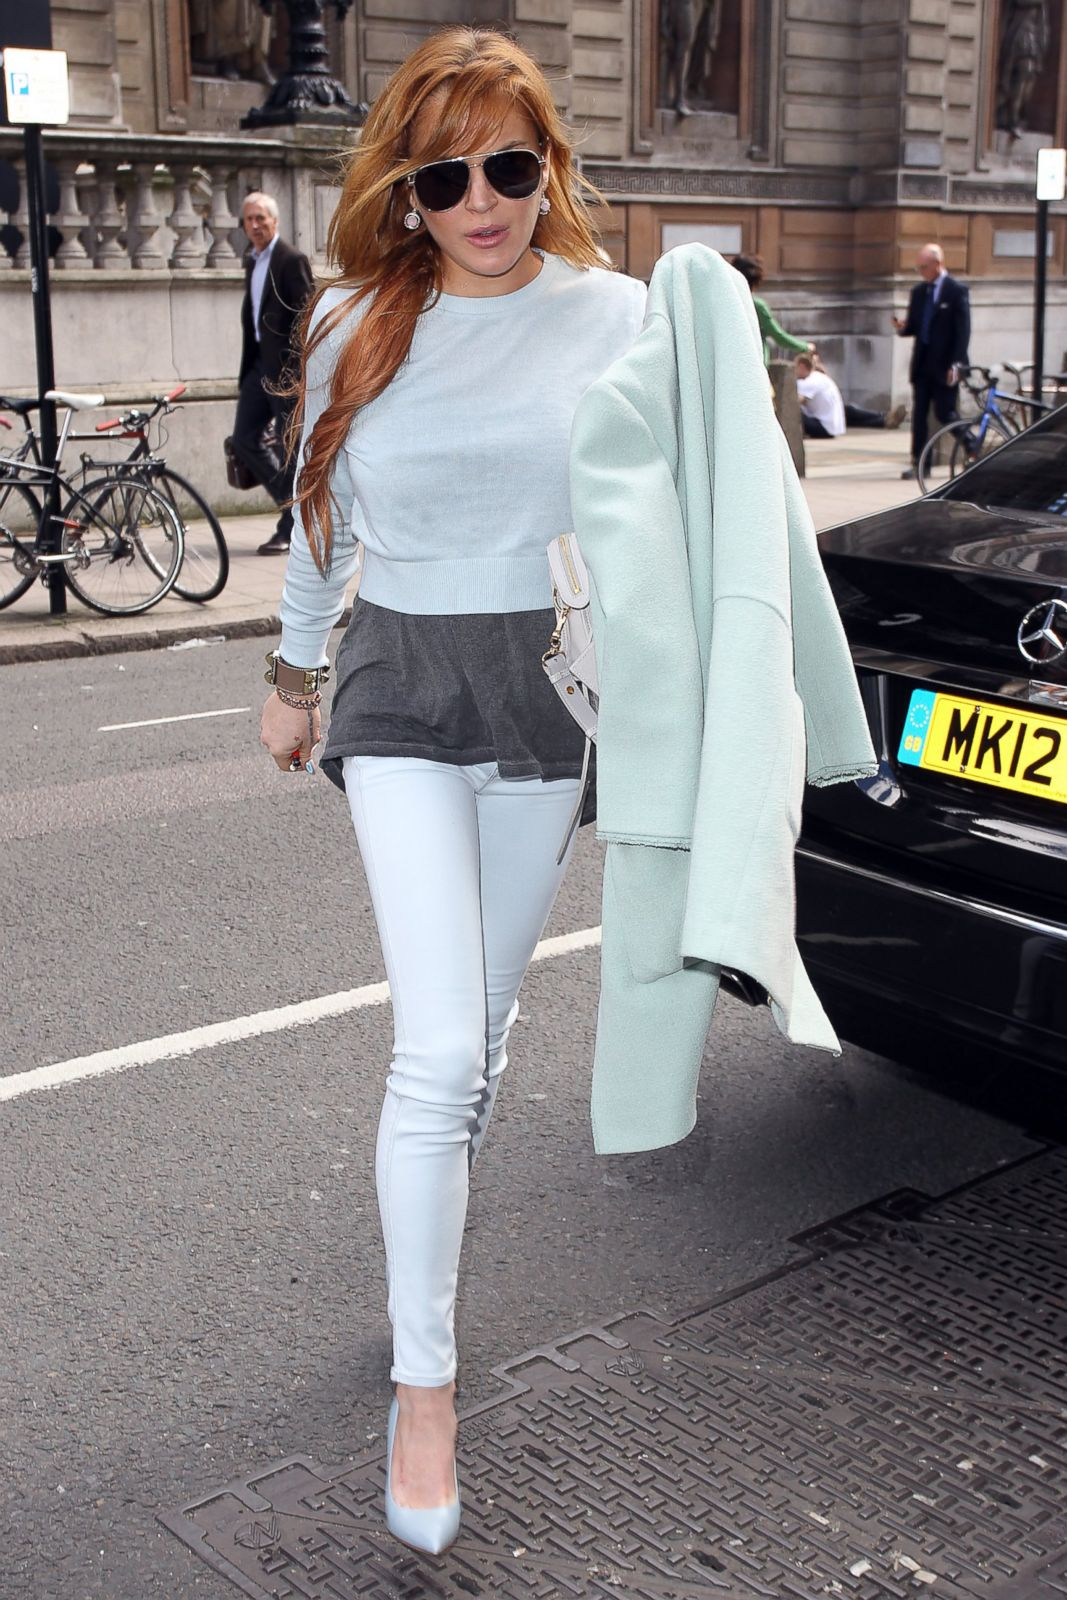 Consider, Lindsay lohan see through shirt simply excellent